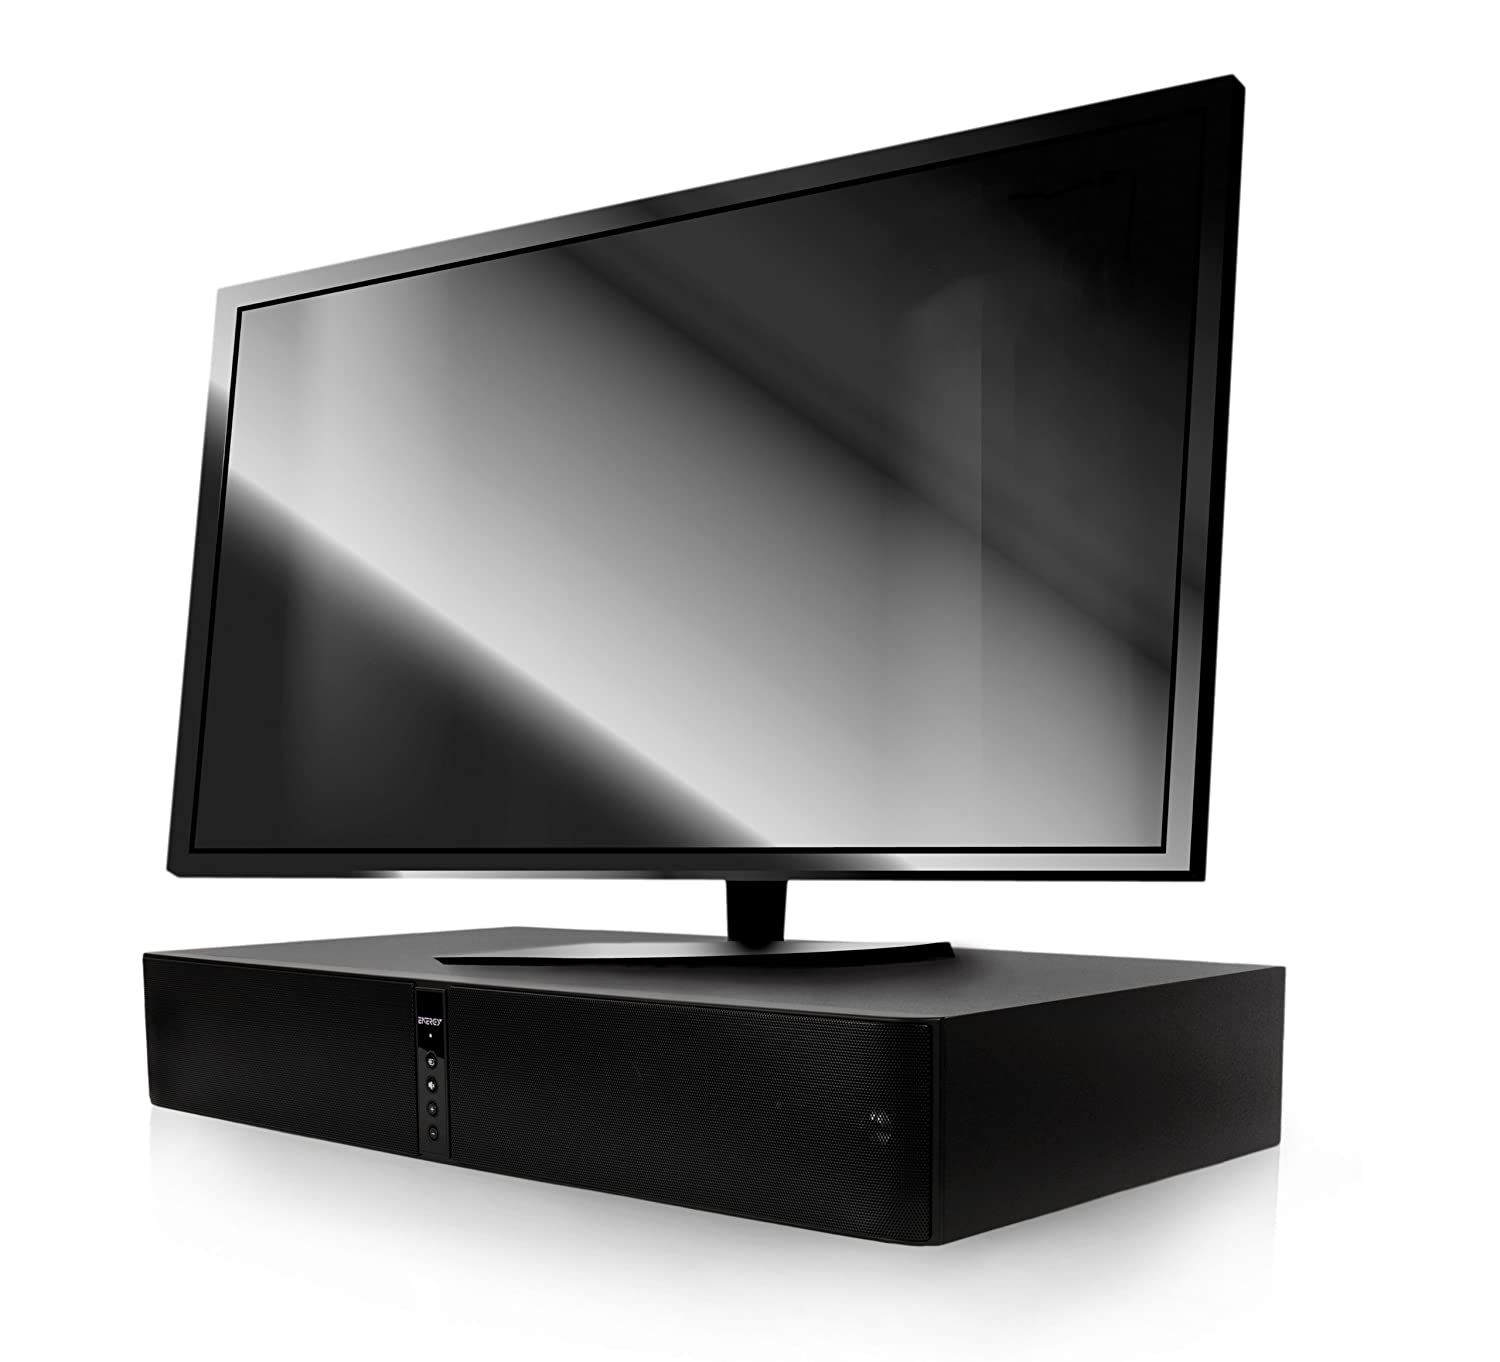 sound system for tv. amazon.com: energy power base tv sound system with bluetooth wireless technology: home audio \u0026 theater for tv